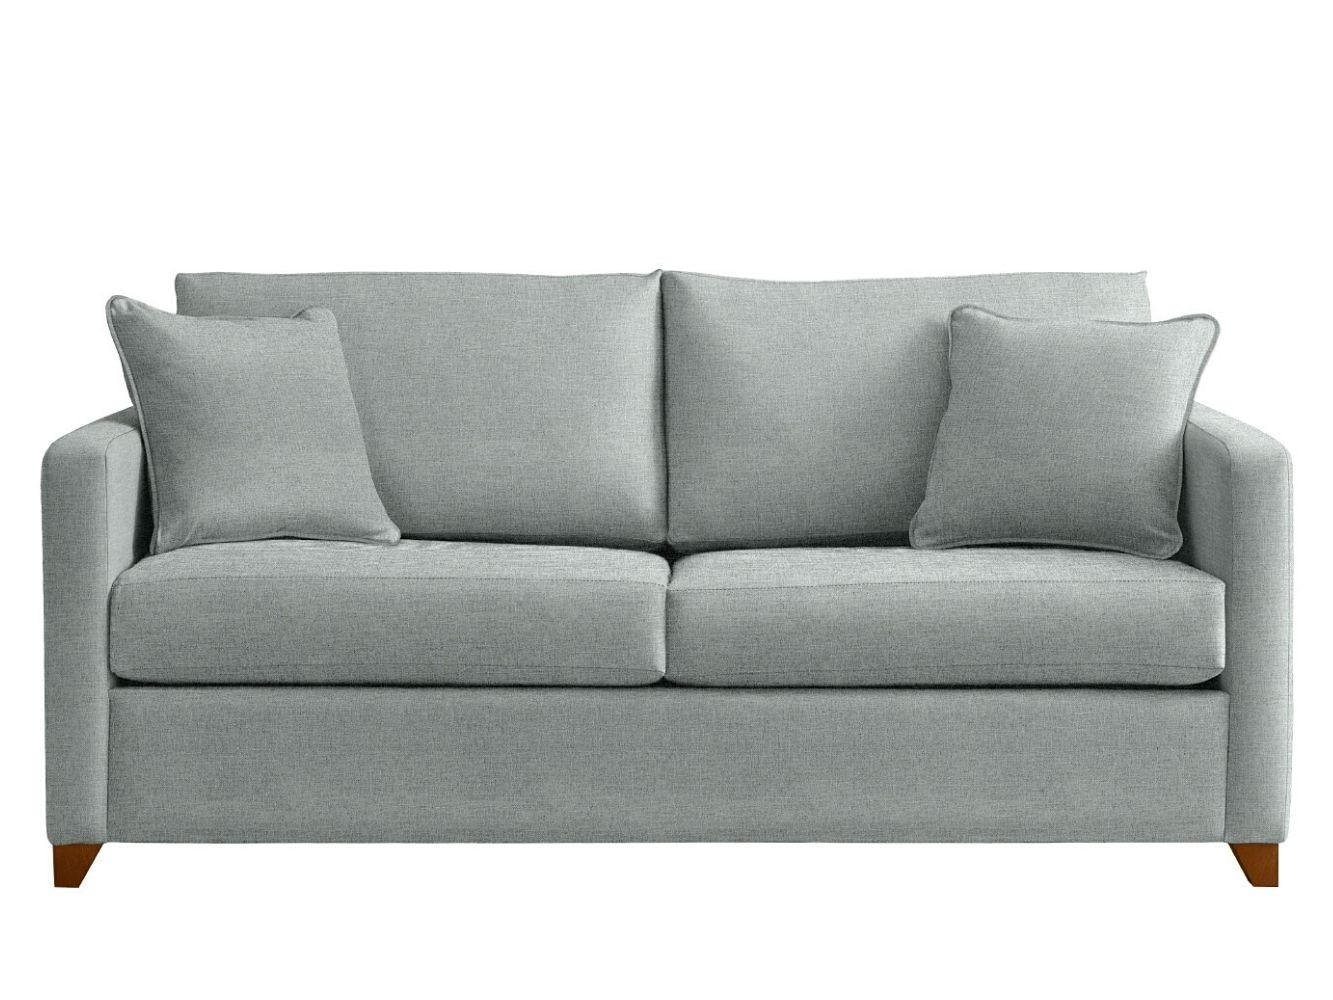 This is how I look in Country Linen Zinc (Discontinued Fabric) with reflex foam seat cushions